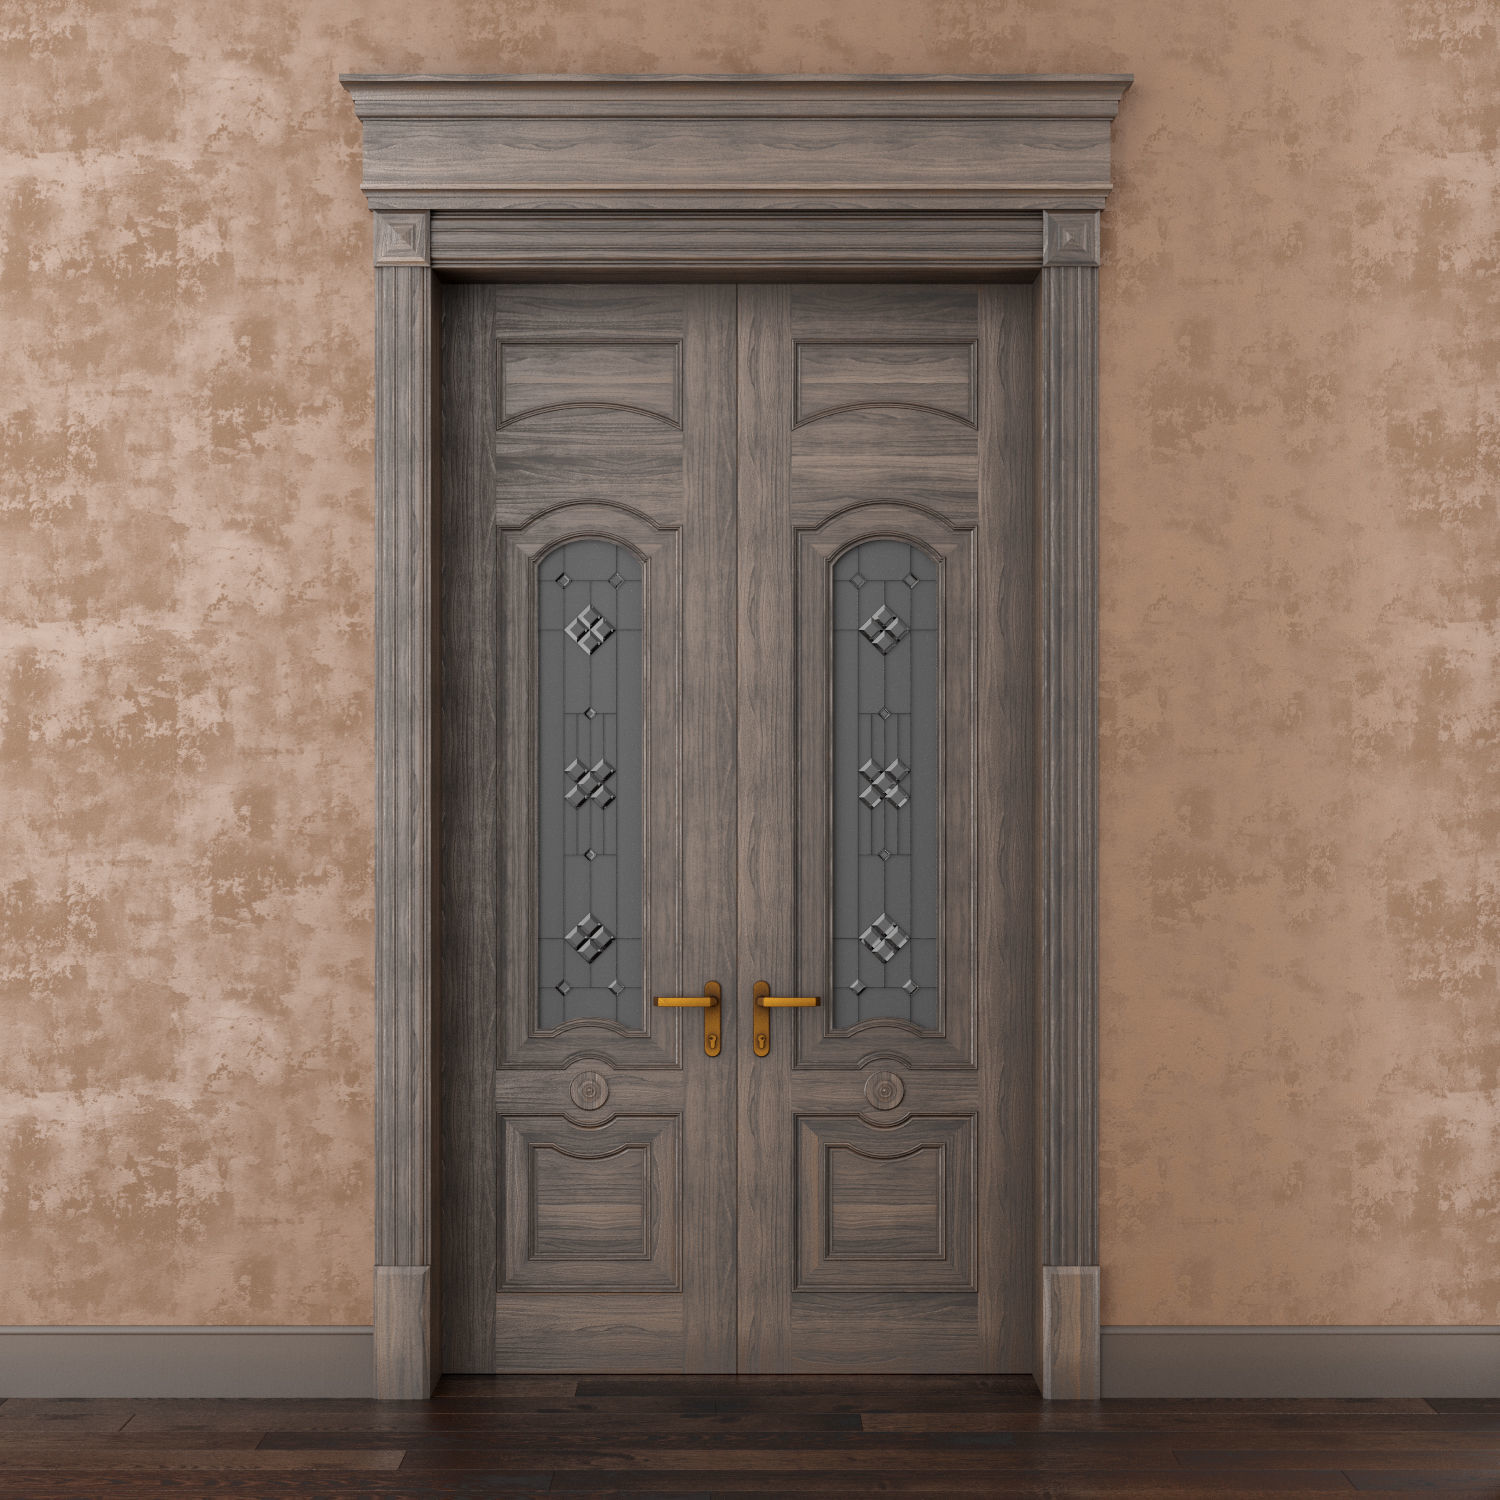 Classic Wood Door Whith Stained Glass Window 3d Model